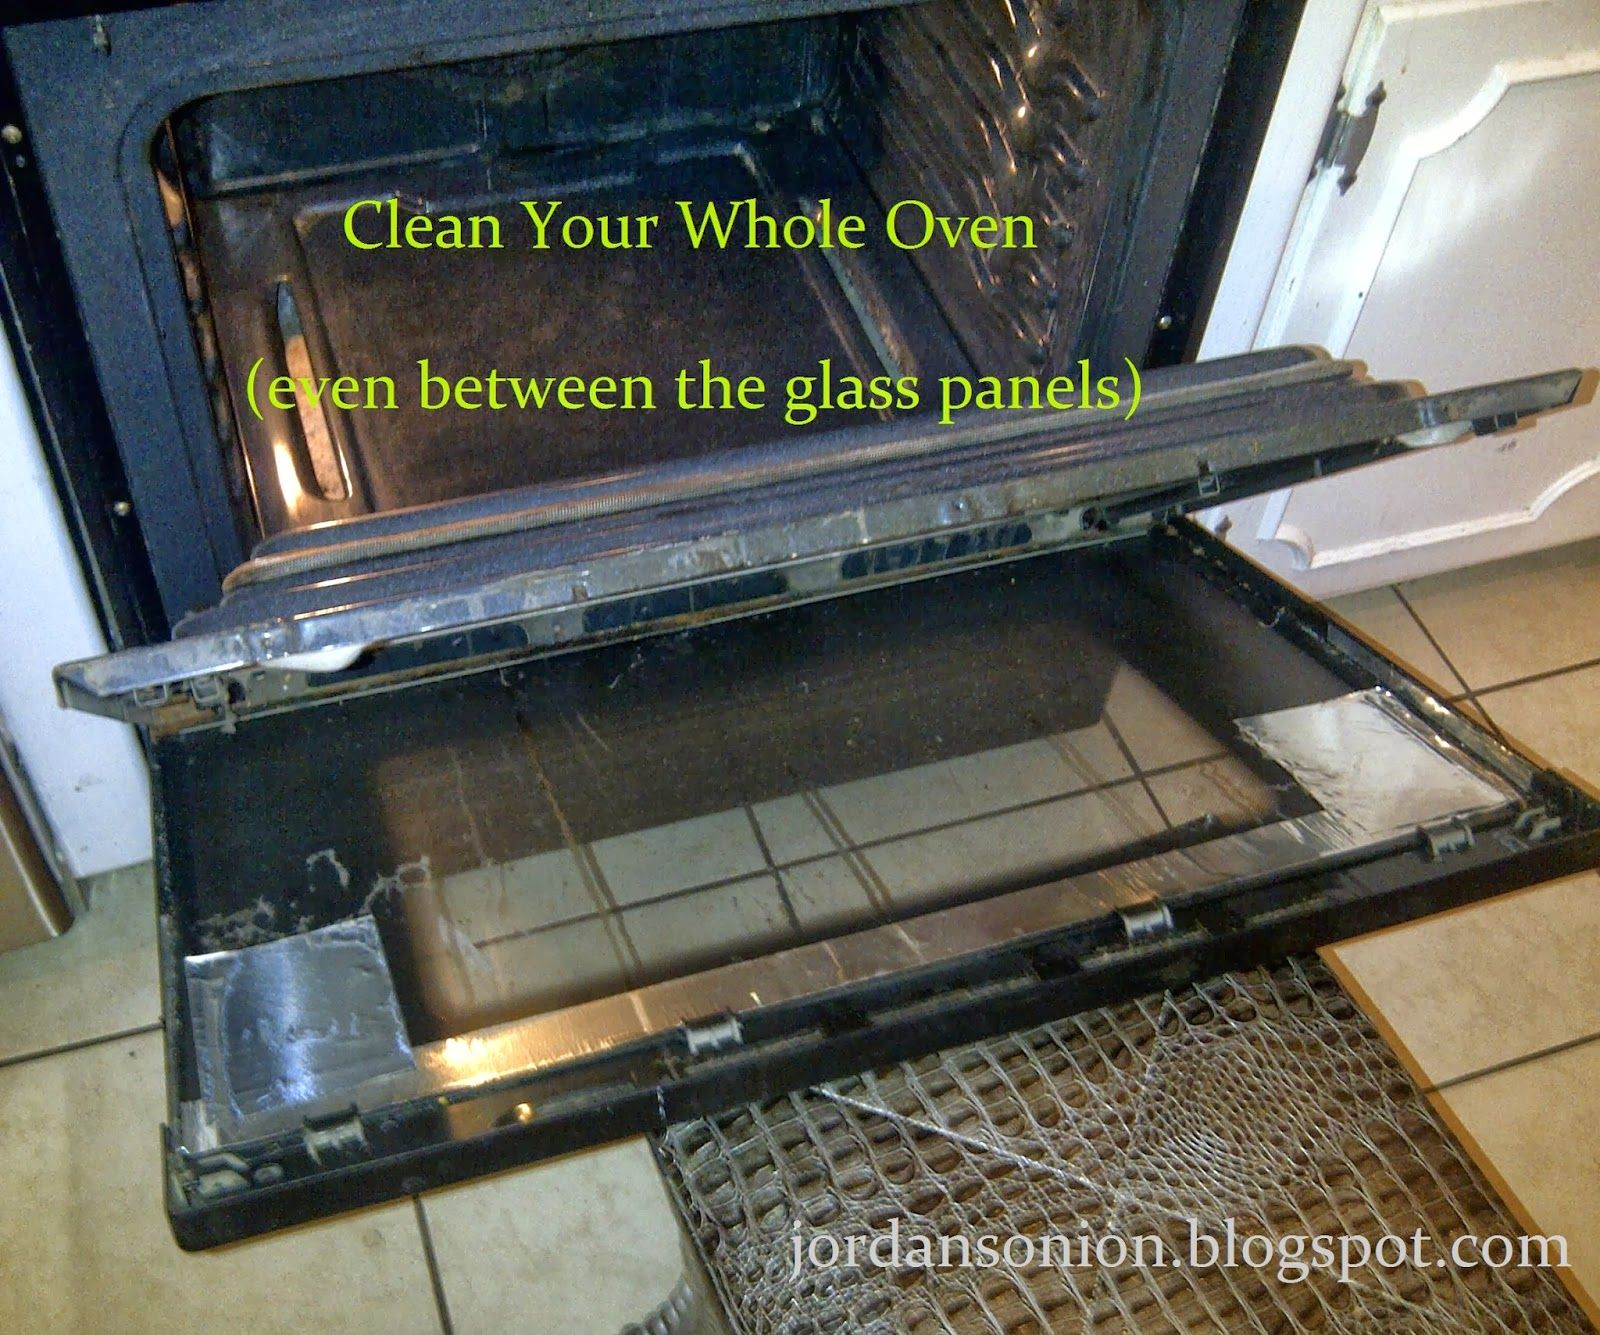 Clean Your Whole Oven Had No Idea The Door Would Open Like This To Inside Glass Panels